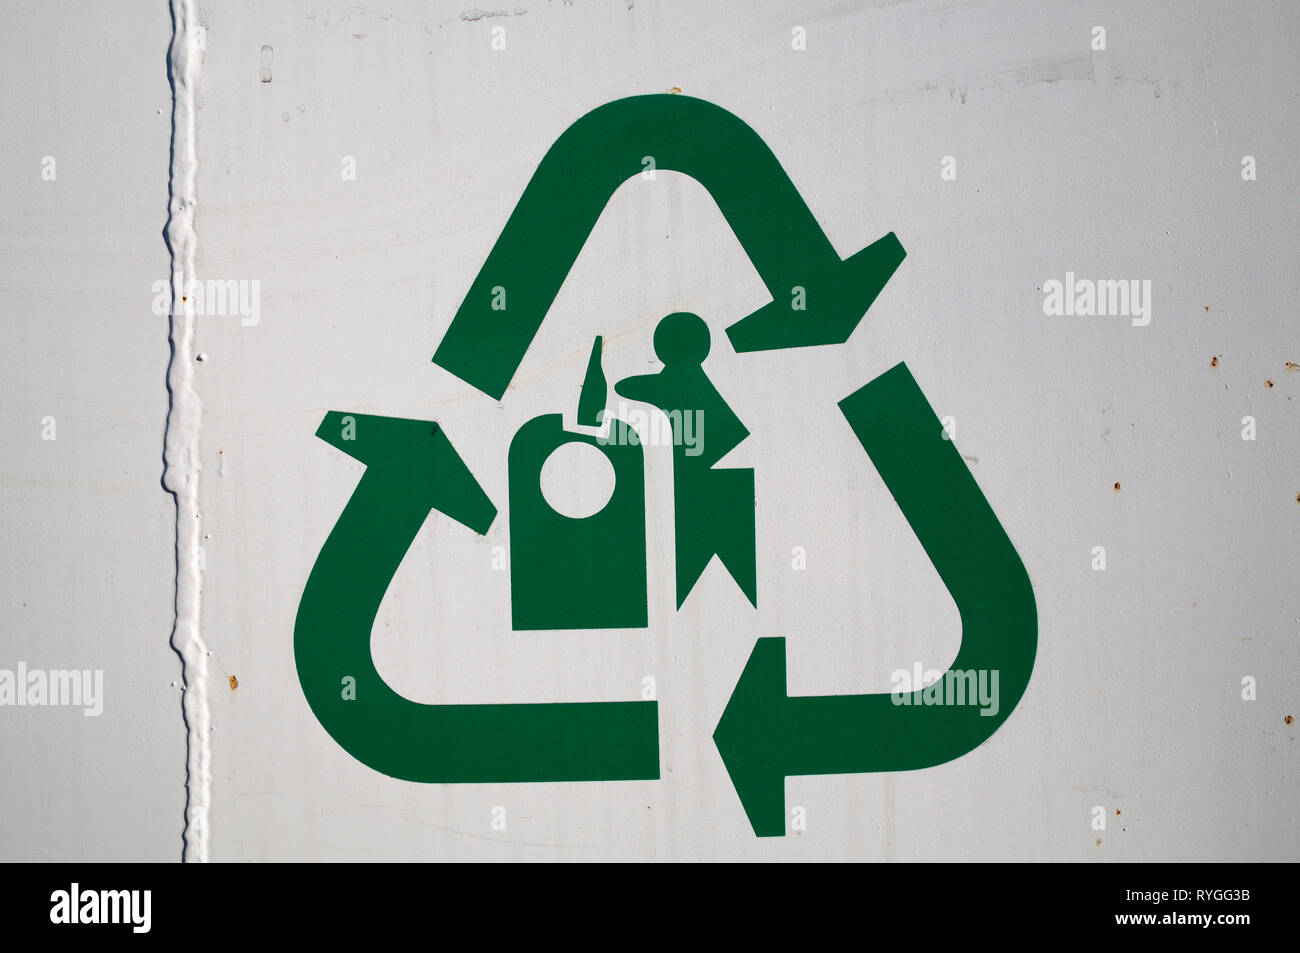 Recycling symbol - Stock Image